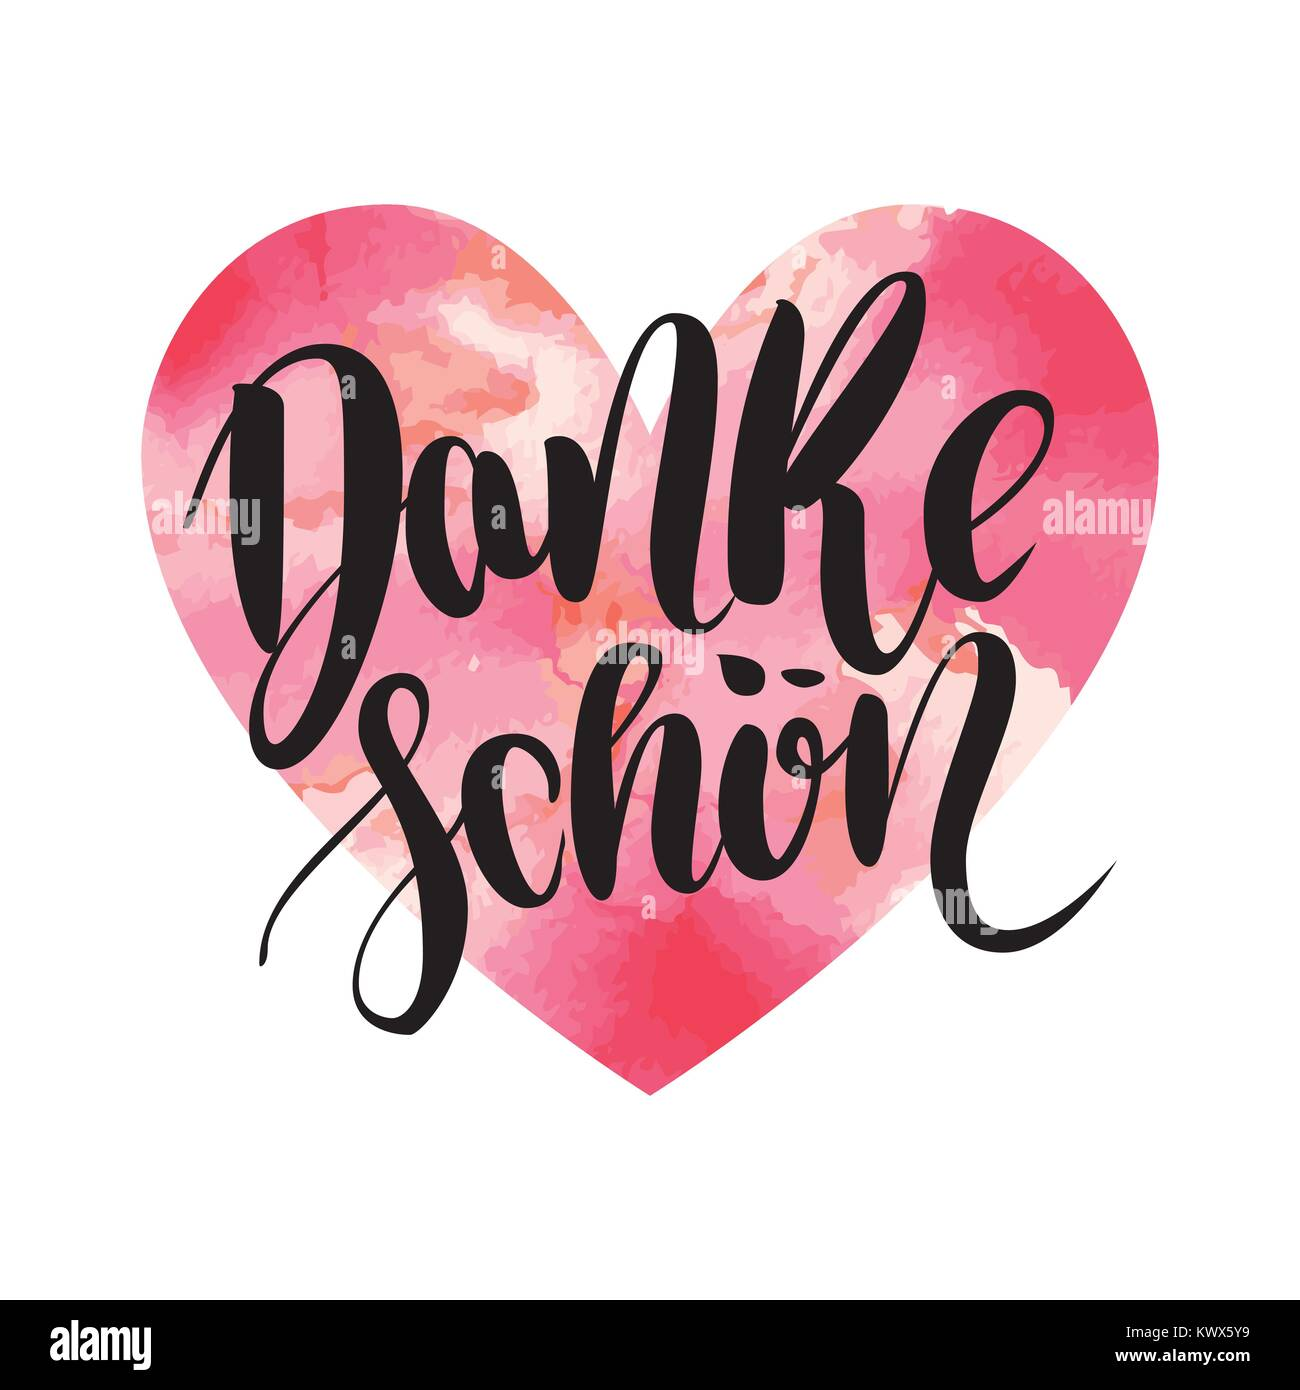 Danke schoen. Thank you in german. Vector hand drawn brush lettering on colorful watercolor heart isolated on white Stock Vector